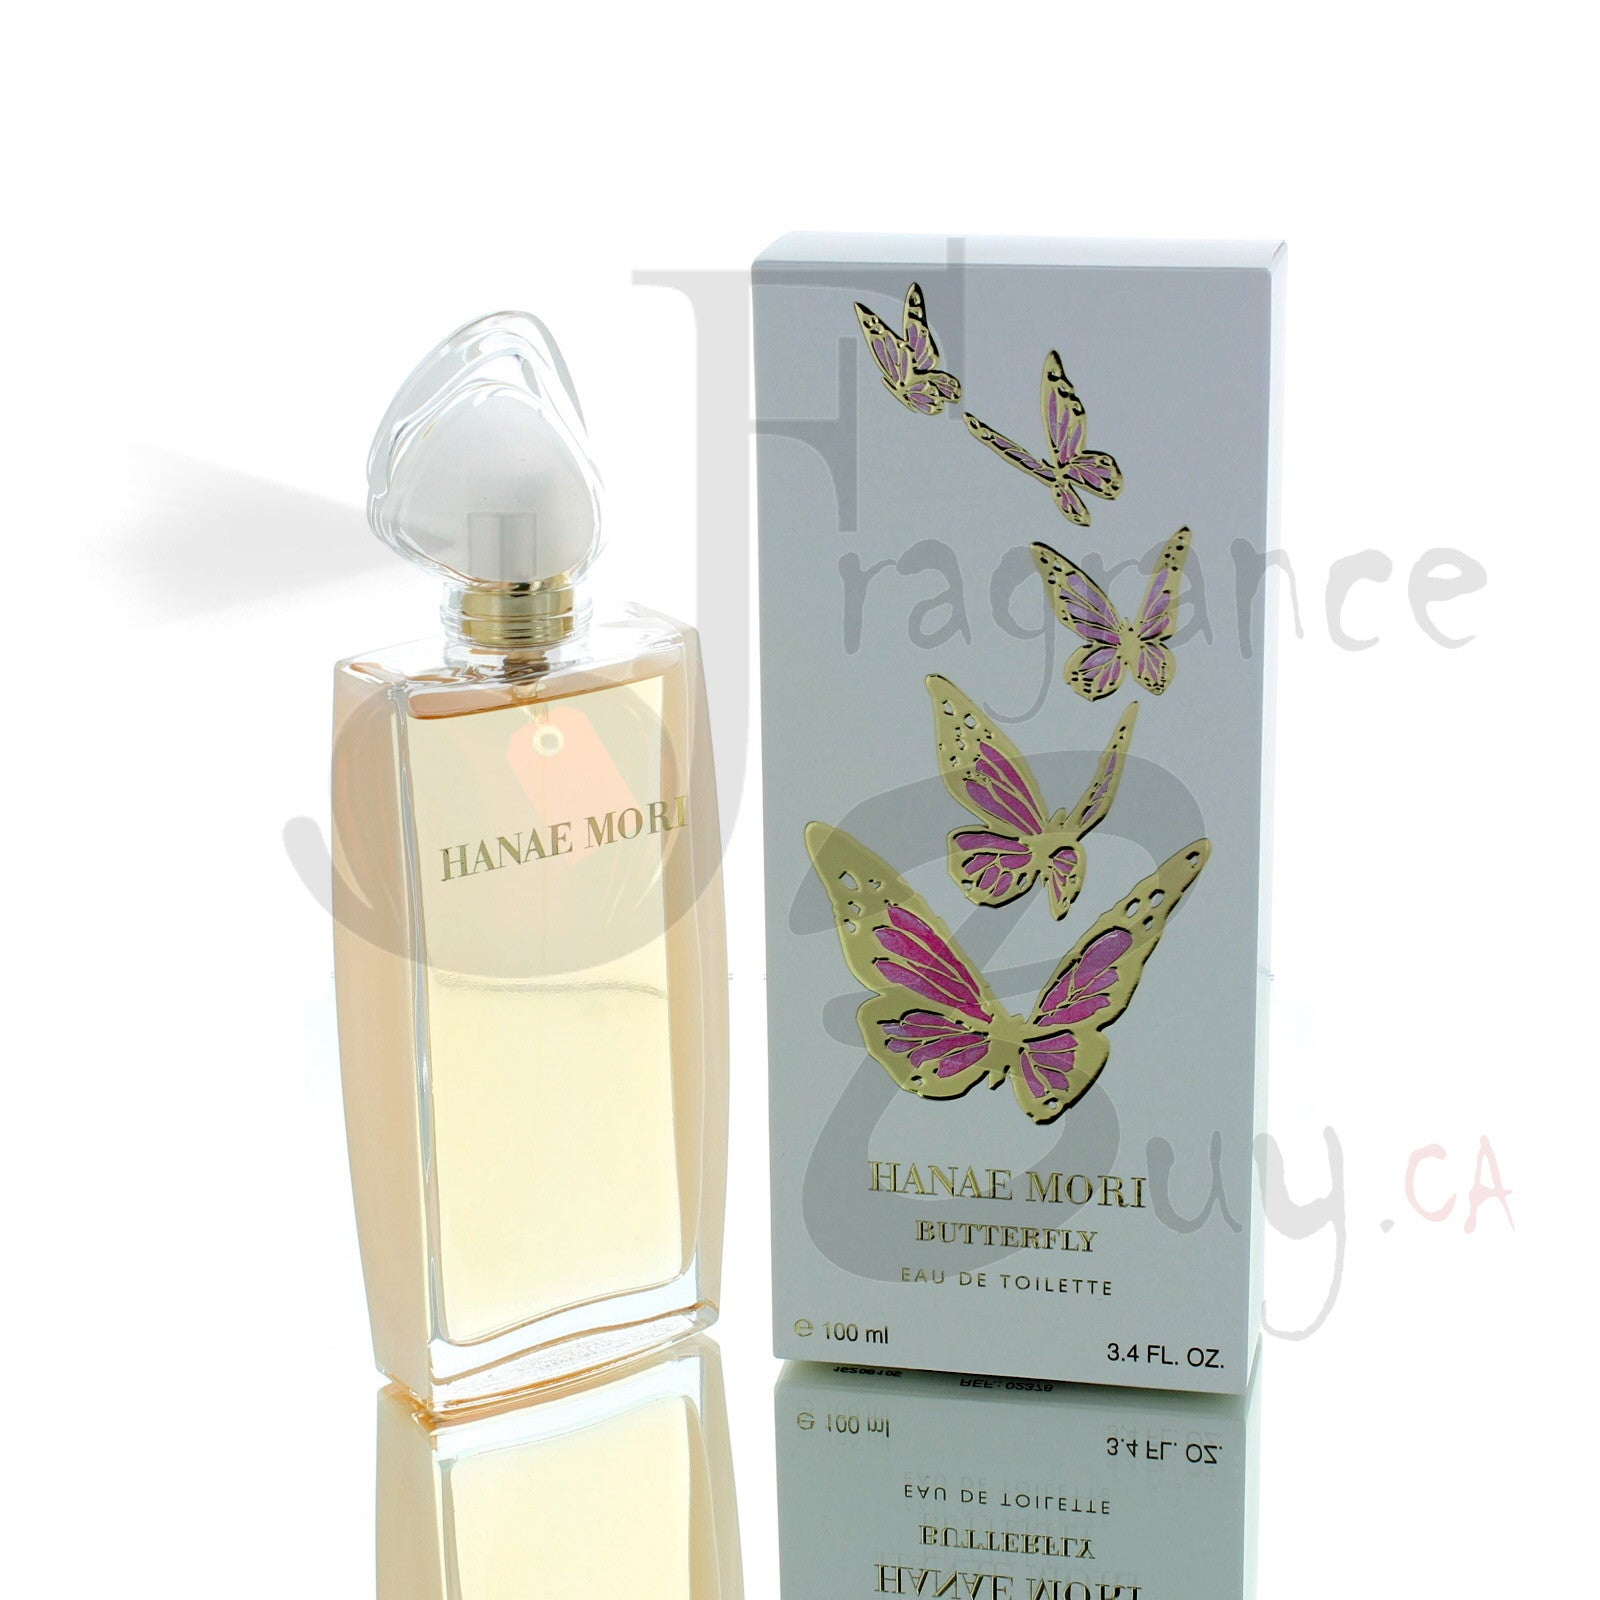 Fragrancebuy — Butterfly by Hanae Mori Woman Perfume | Best Price ...